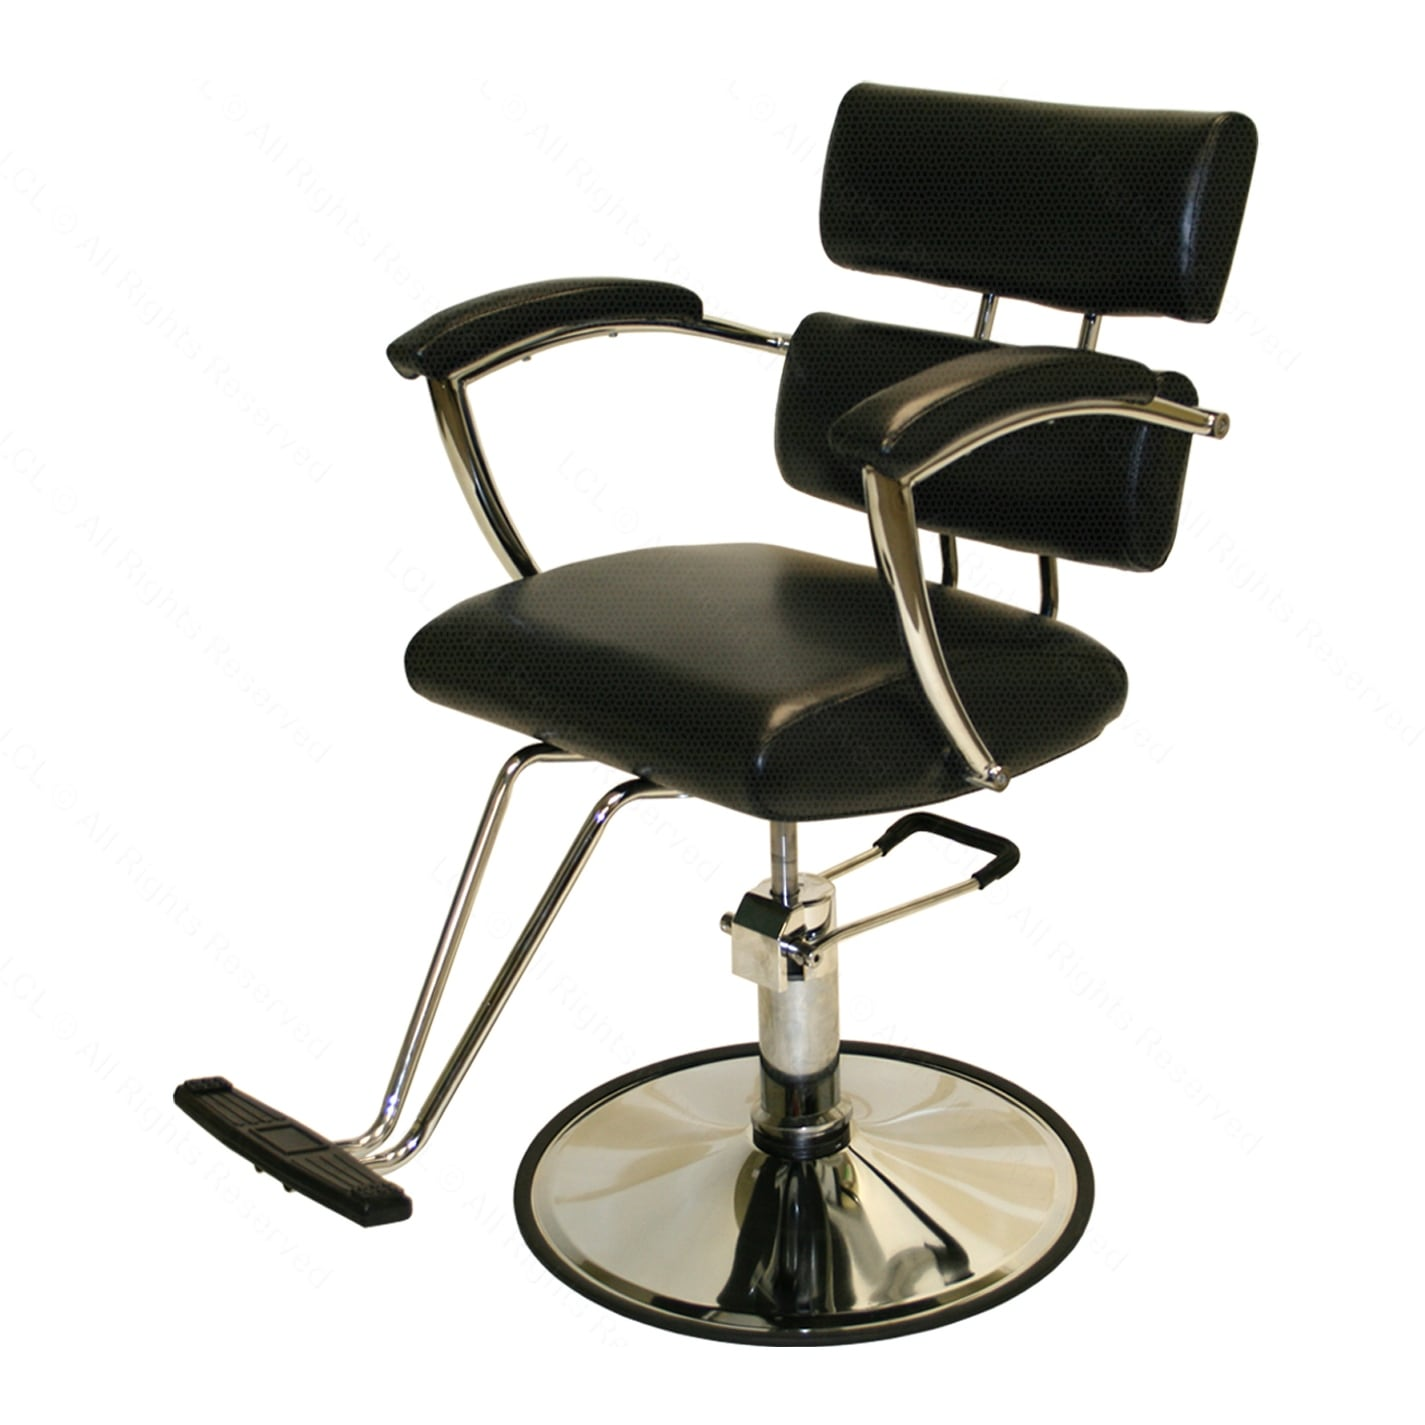 Hydraulic Styling Chair Lcl Beauty Contemporary Black Hydraulic Barber Styling Chair With Padded Armrests